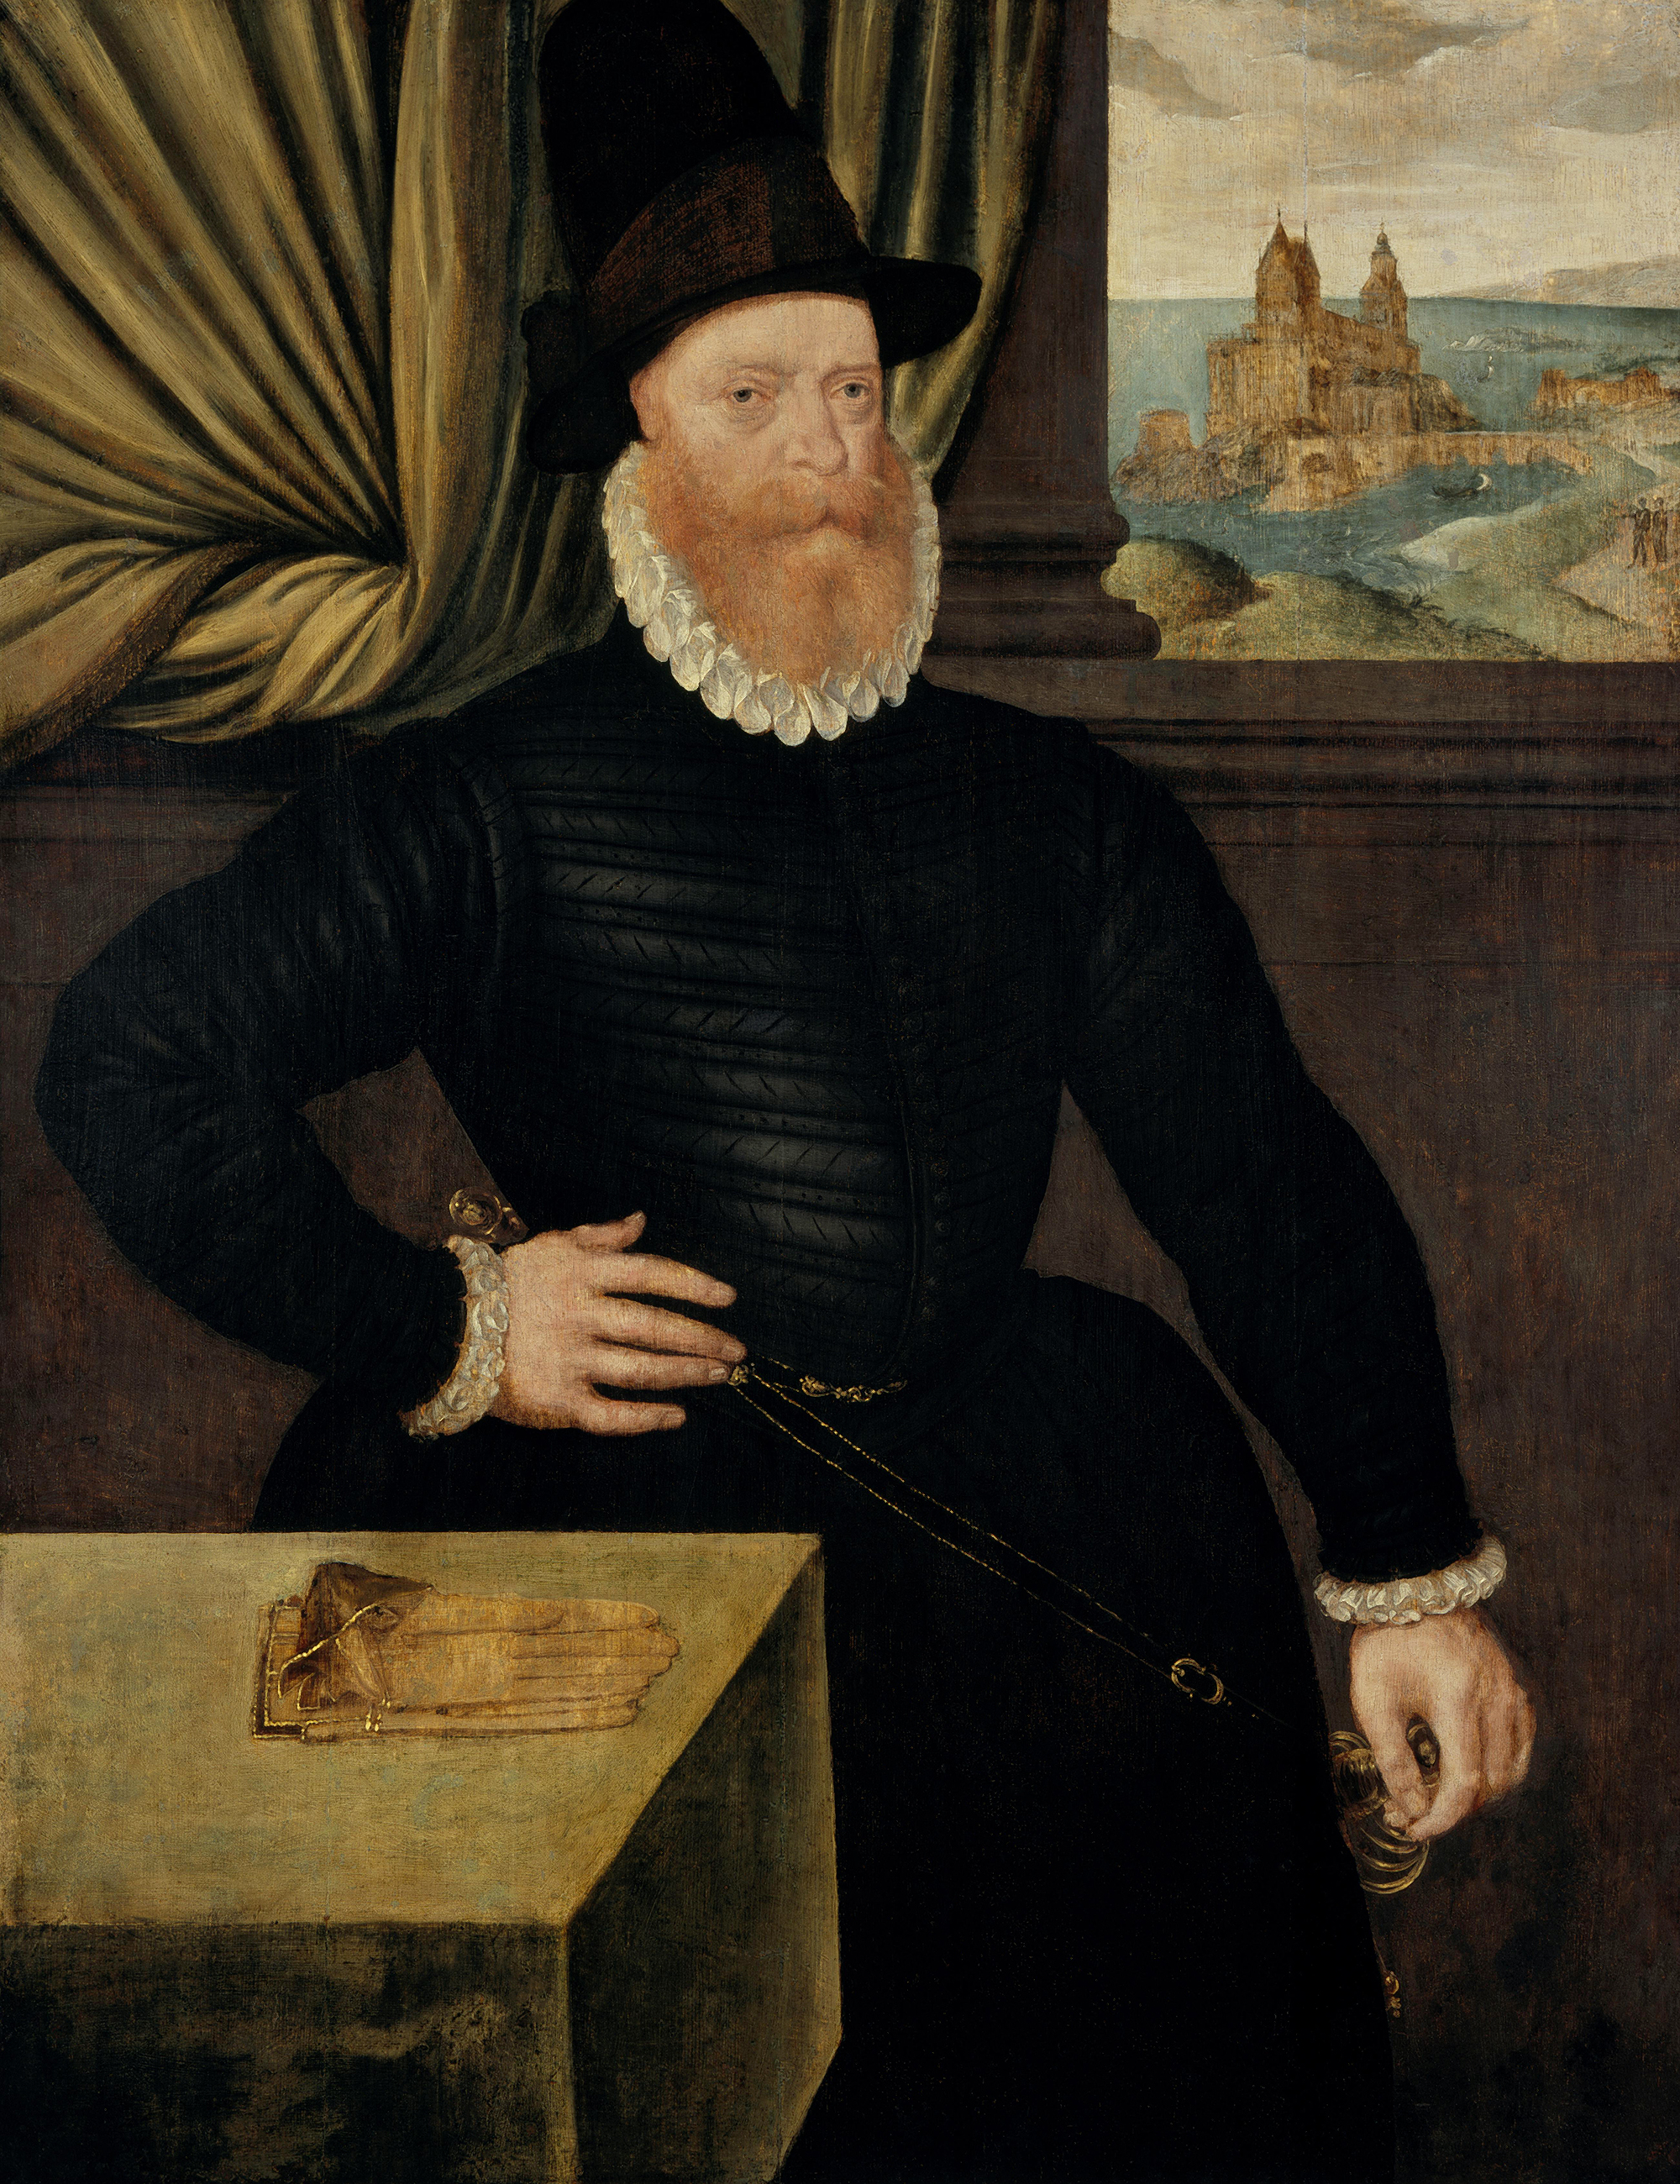 Portrait of James Douglas (1516-1581), 4th Earl of Morton (1553), Regent of Scotland (1572-1580), Lord Chancellor of Scotland (1563-1566; 1567-1573), Lord High Admiral of Scotland (1568-1581), 1578 | Portraits of Kings